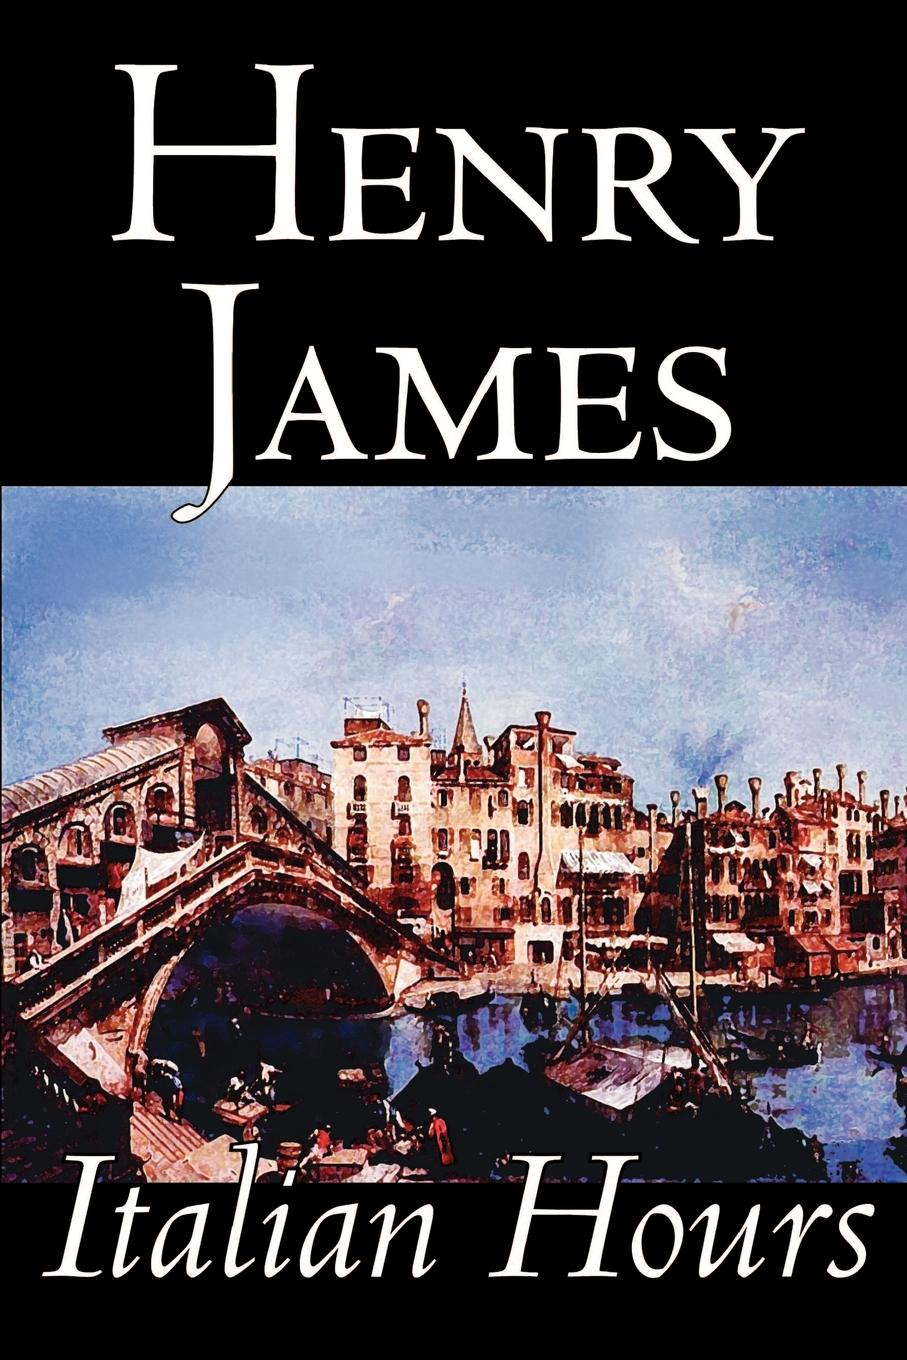 Henry James Italian Hours by Henry James, Literary Collections, Travel. Essays & Travelogues, Europe - Italy henry james the ivory tower by henry james fiction classics literary